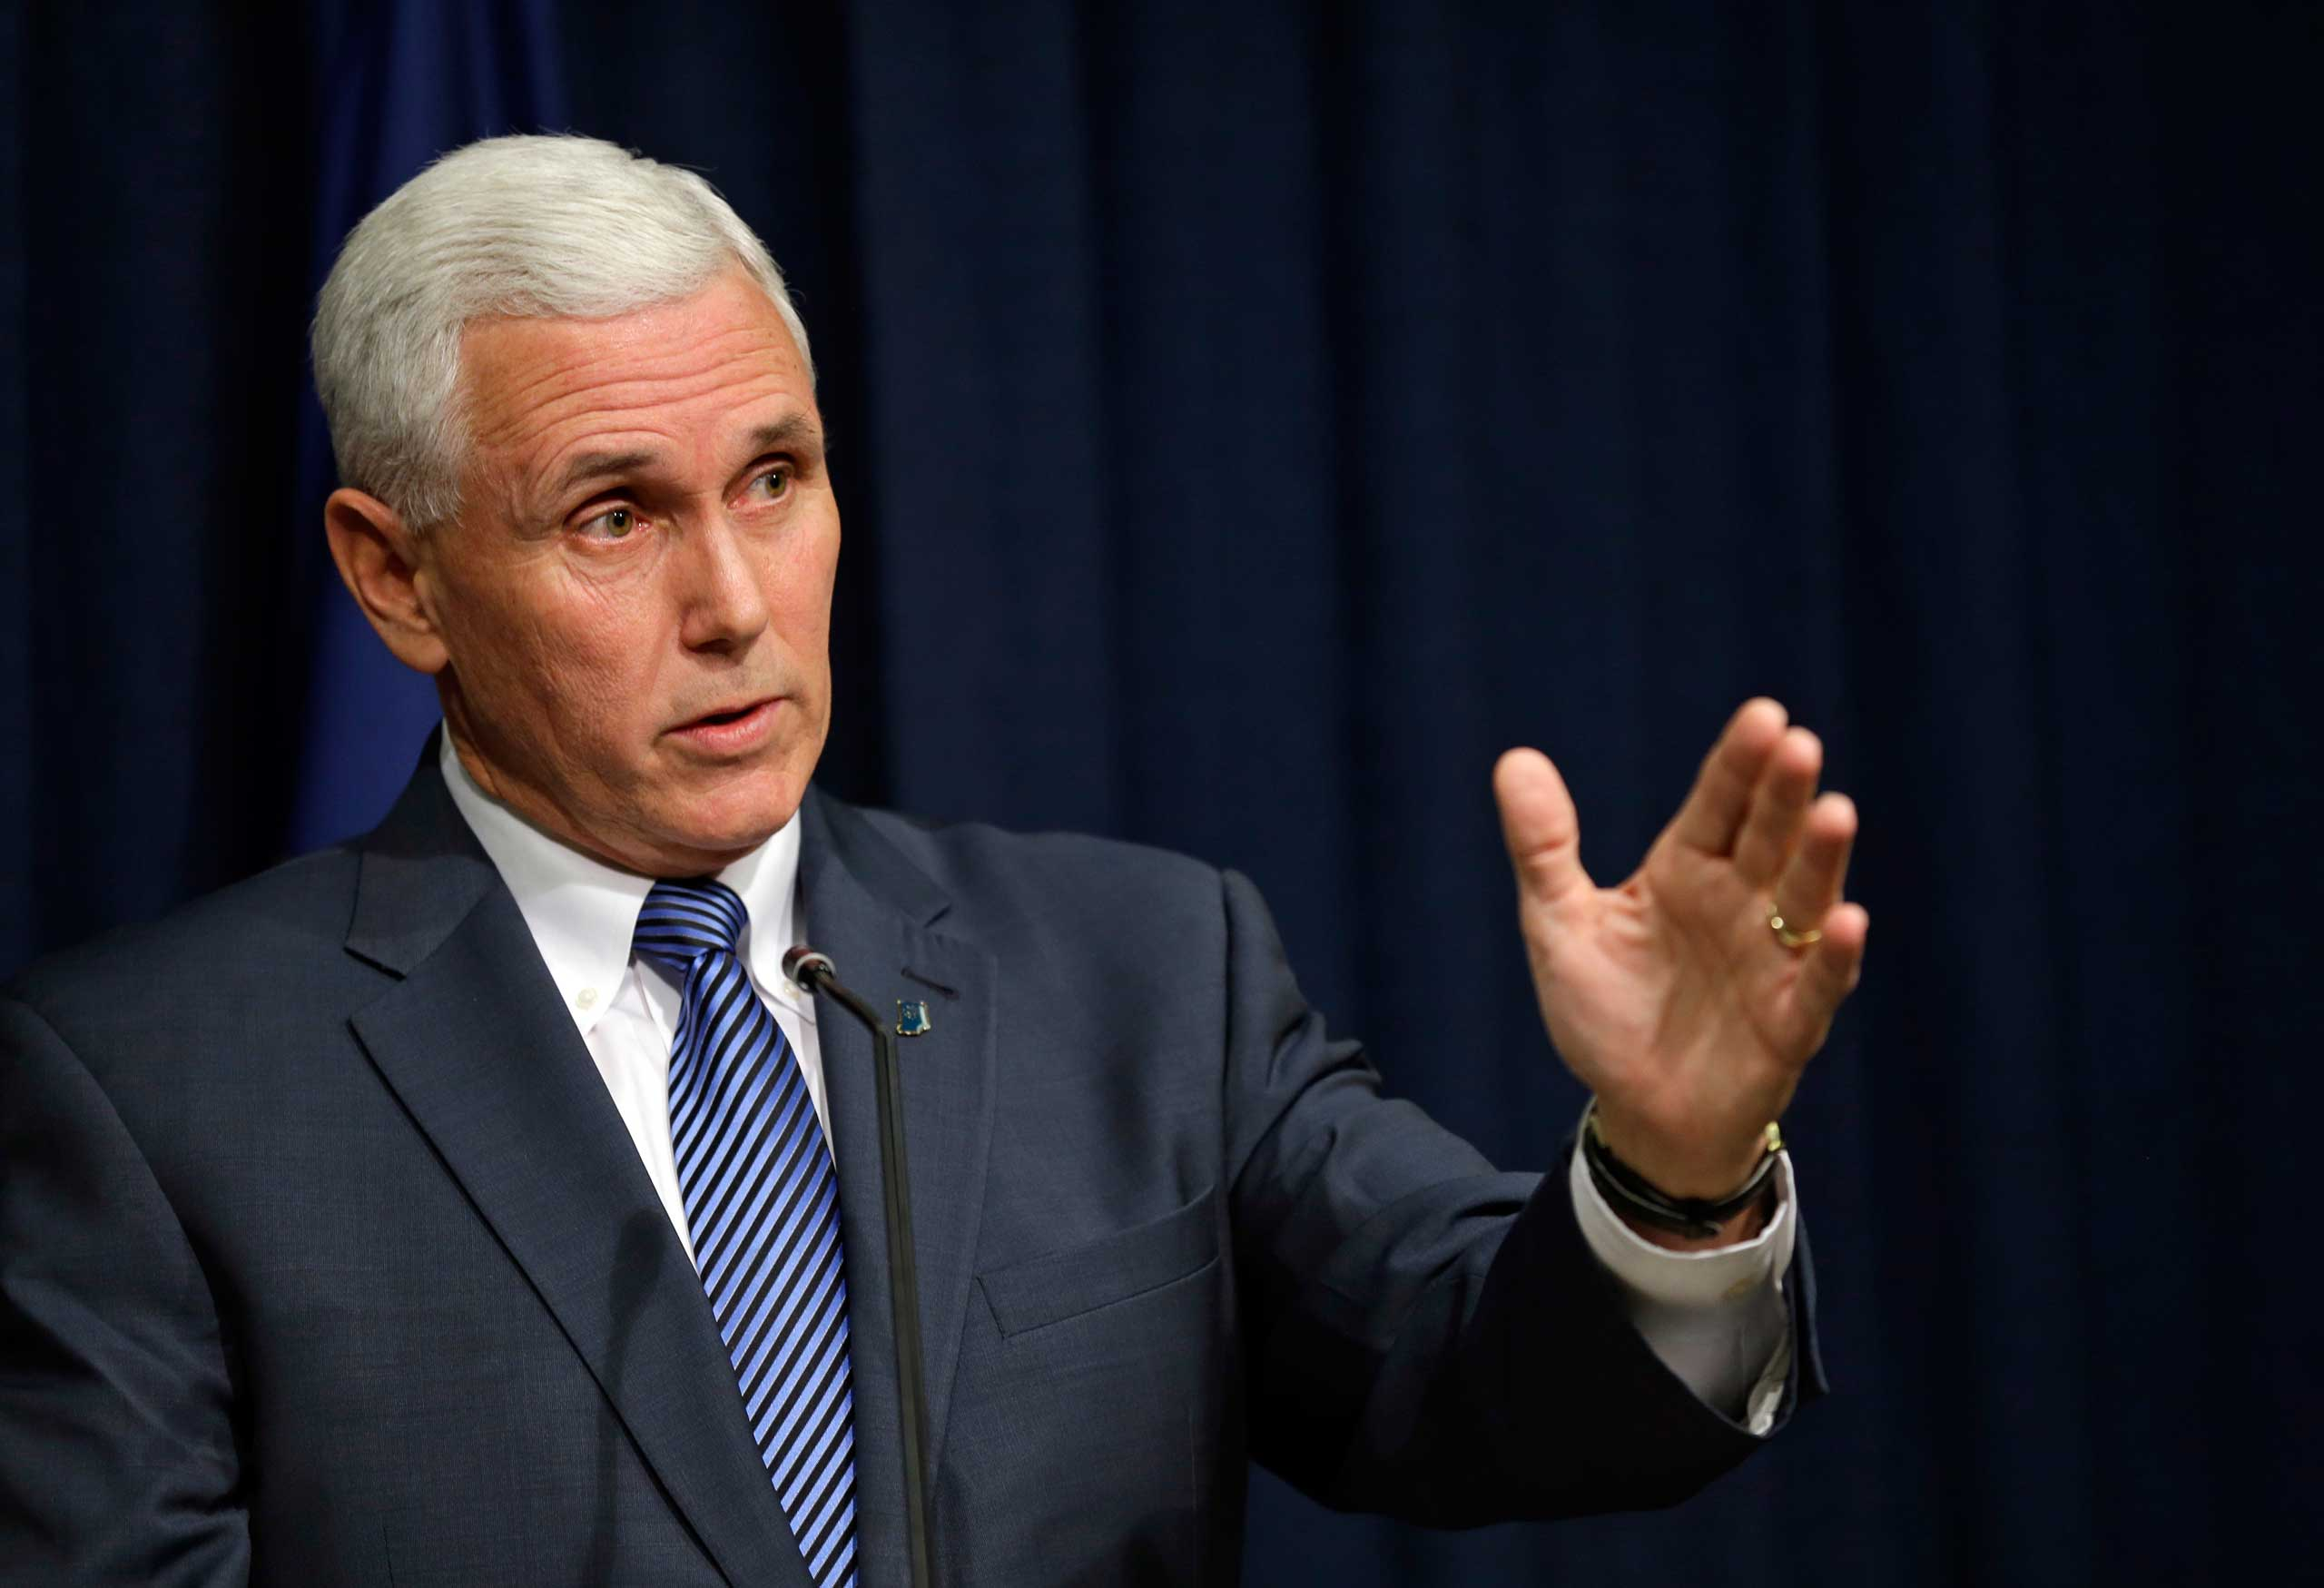 Indiana Gov. Mike Pence holds a news conference at the Statehouse in Indianapolis on March 26, 2015.